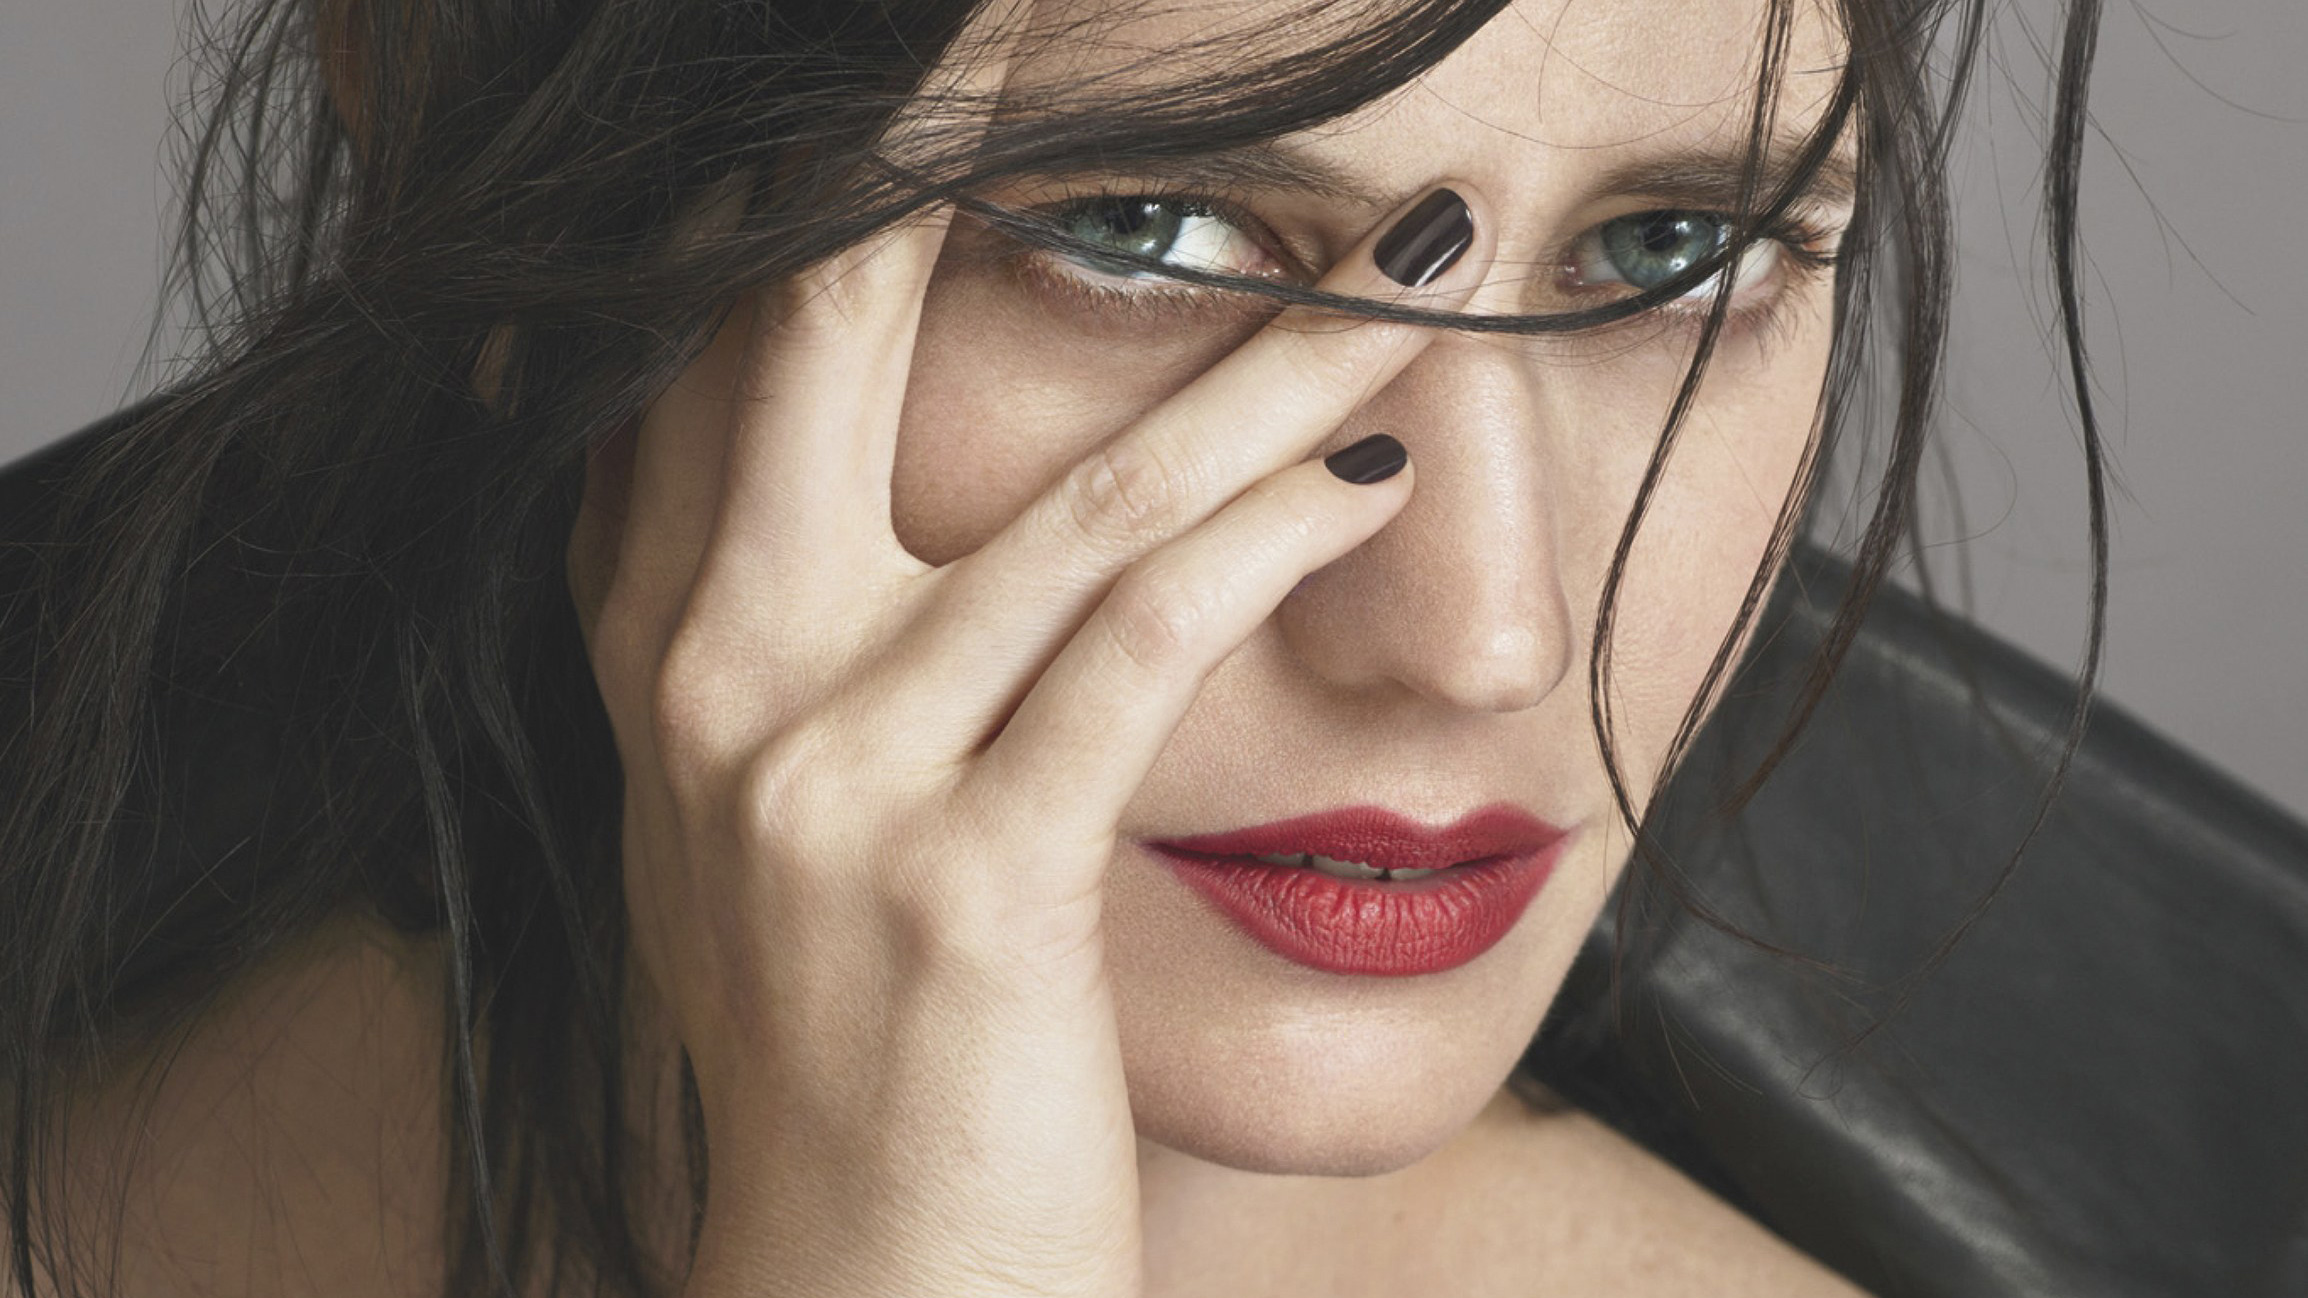 eva green face up close wallpaper 68681